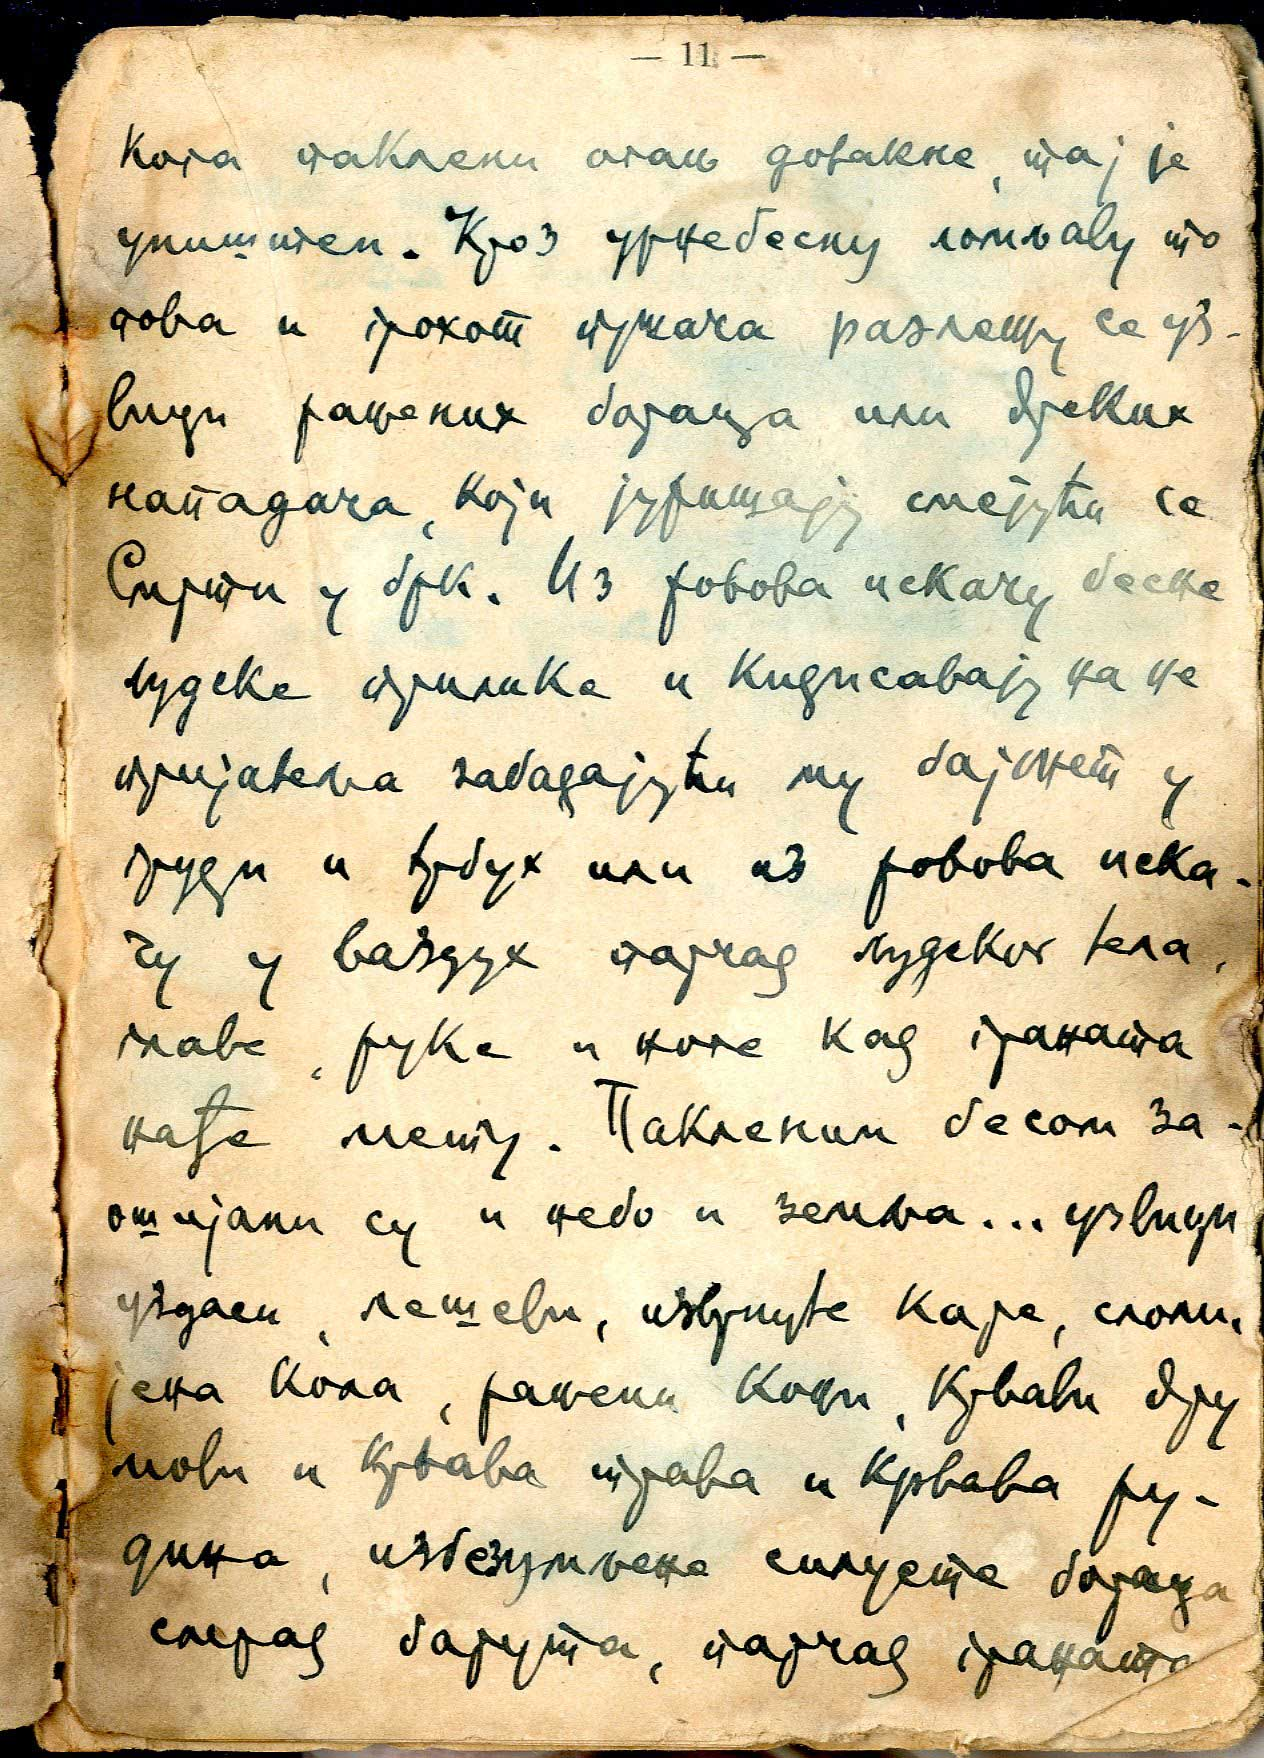 A page from a Serbian soldier's diary, describing some of his impressions during an attack.